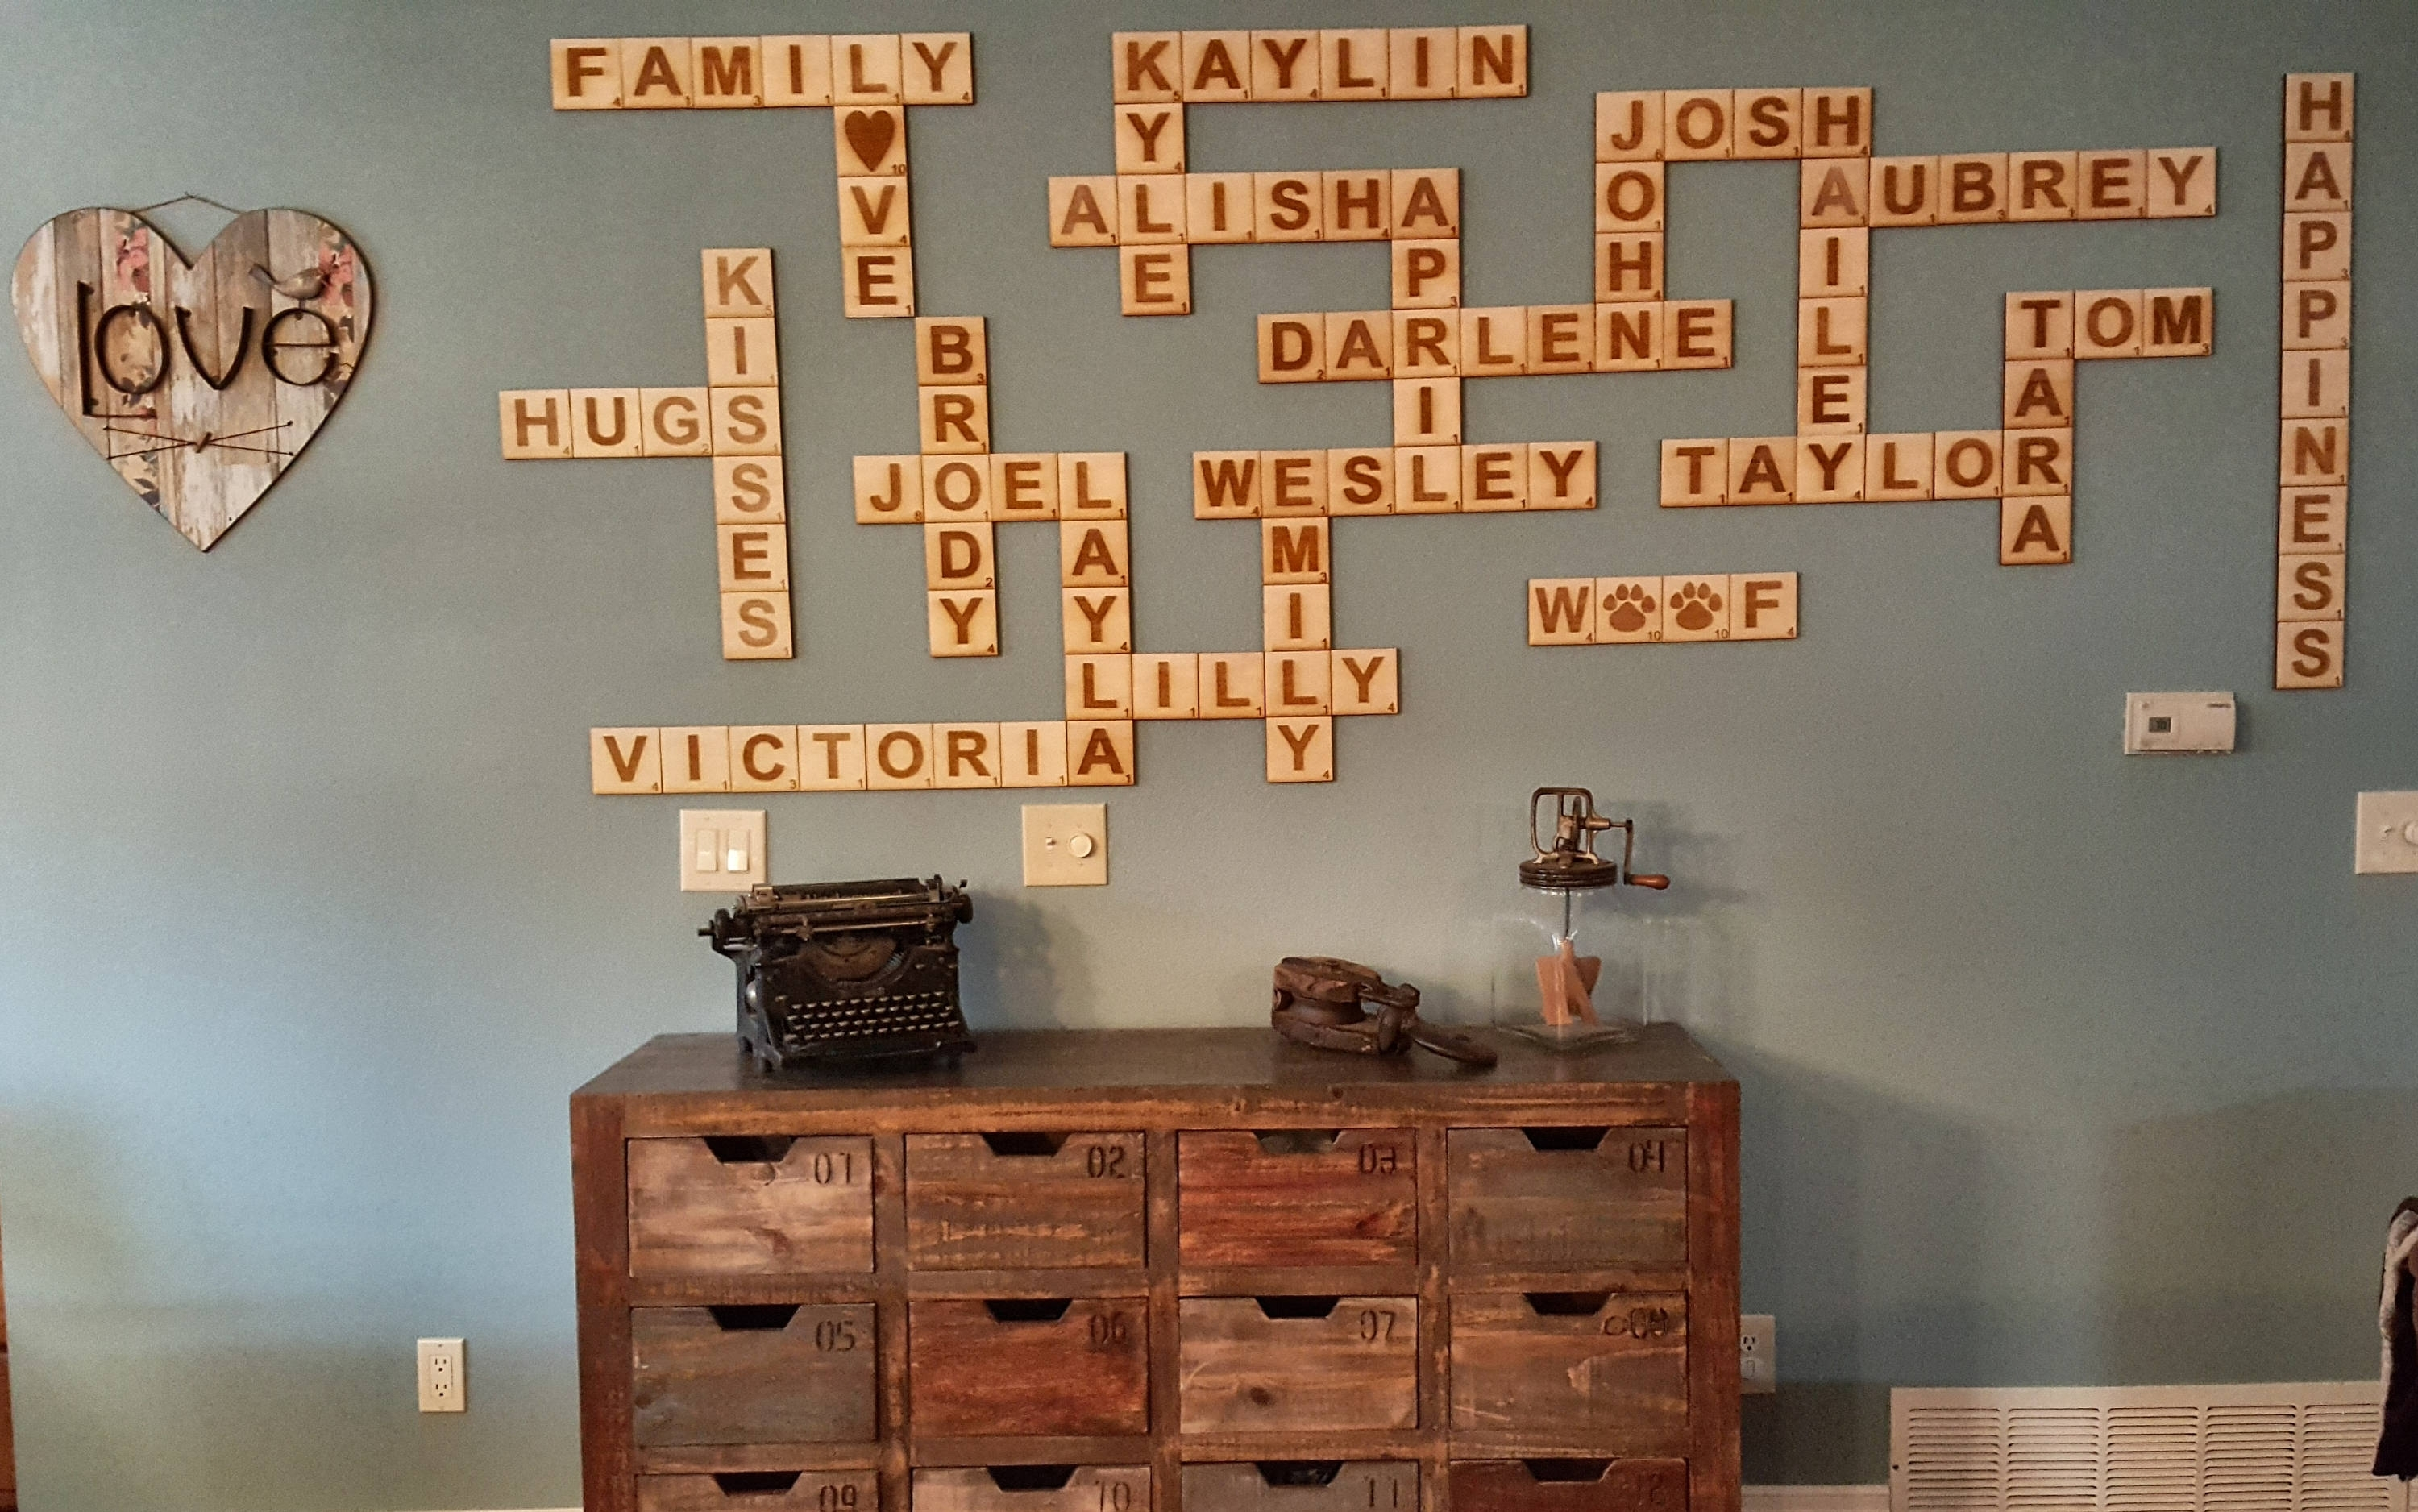 Scrabble Wall Tiles, Scrabble Letters, Scrabble Tiles, Scrabble Wall Pertaining To Scrabble Wall Art (View 19 of 20)